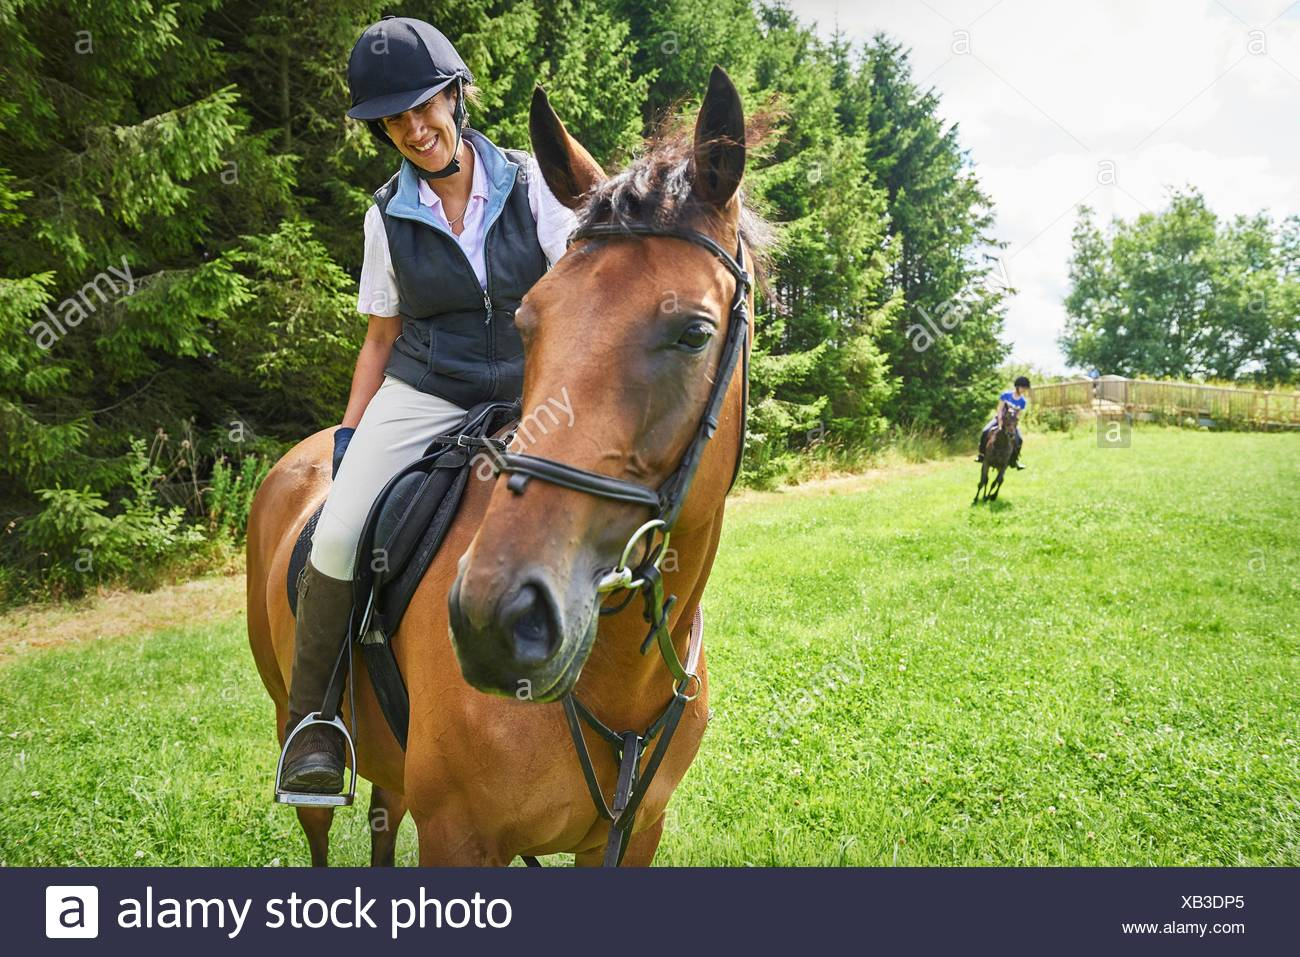 Mature woman on horseback wearing riding hat and boots looking at horse smiling - Stock Image